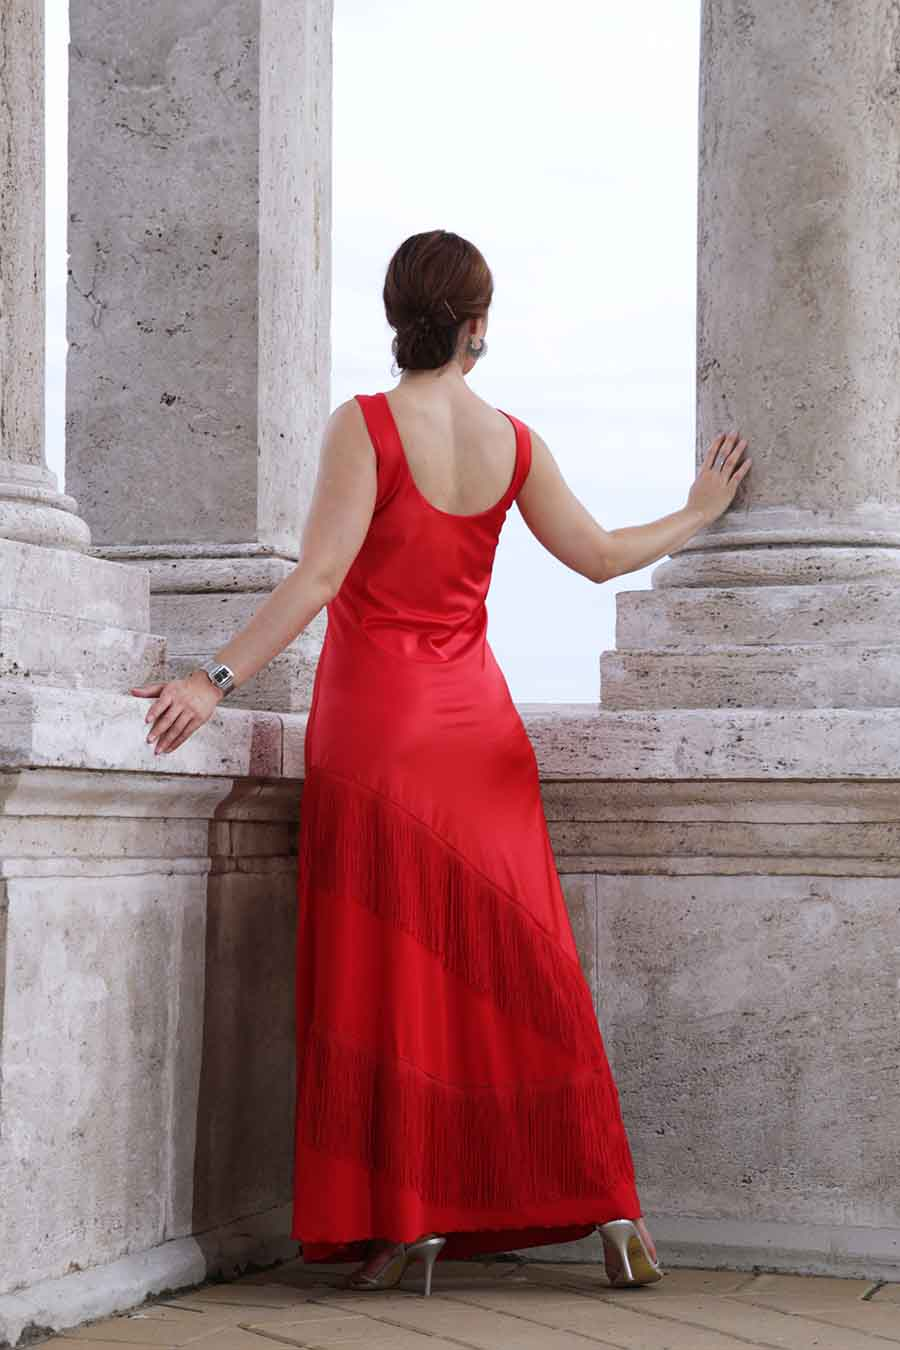 Satin gown in red with fringes from back